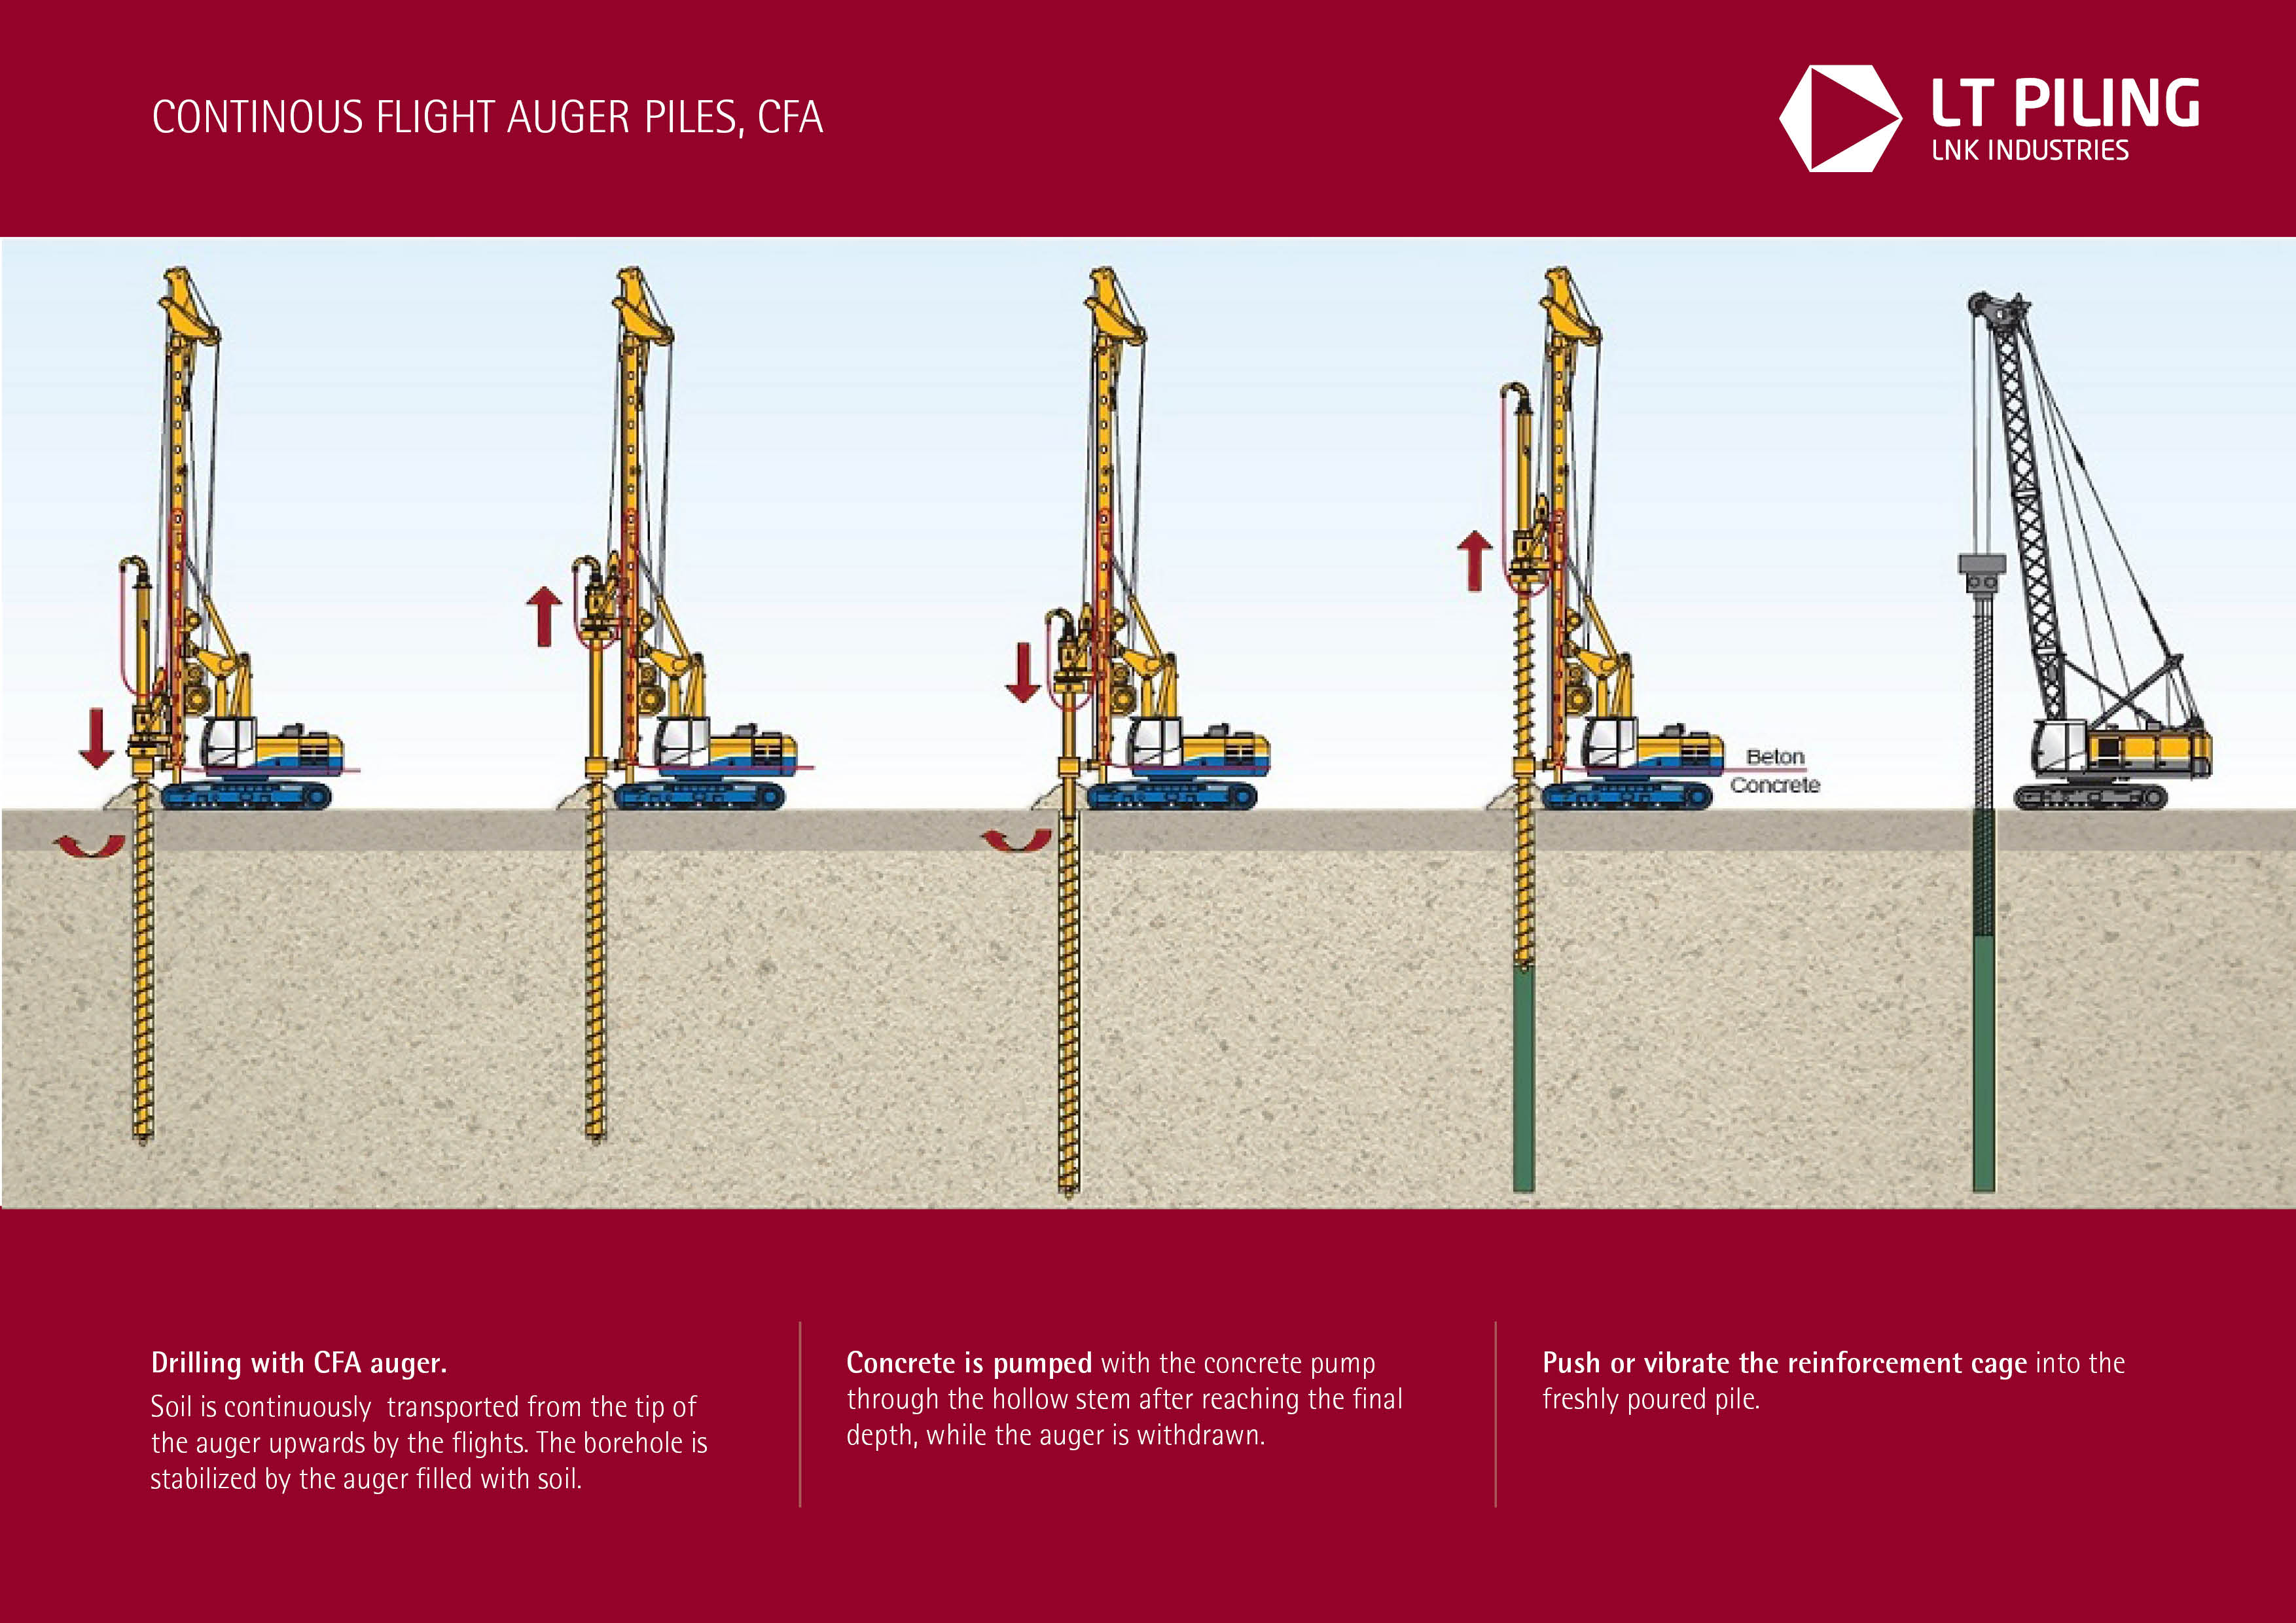 CFA (Drilling with Continuous Flight Auger) technology